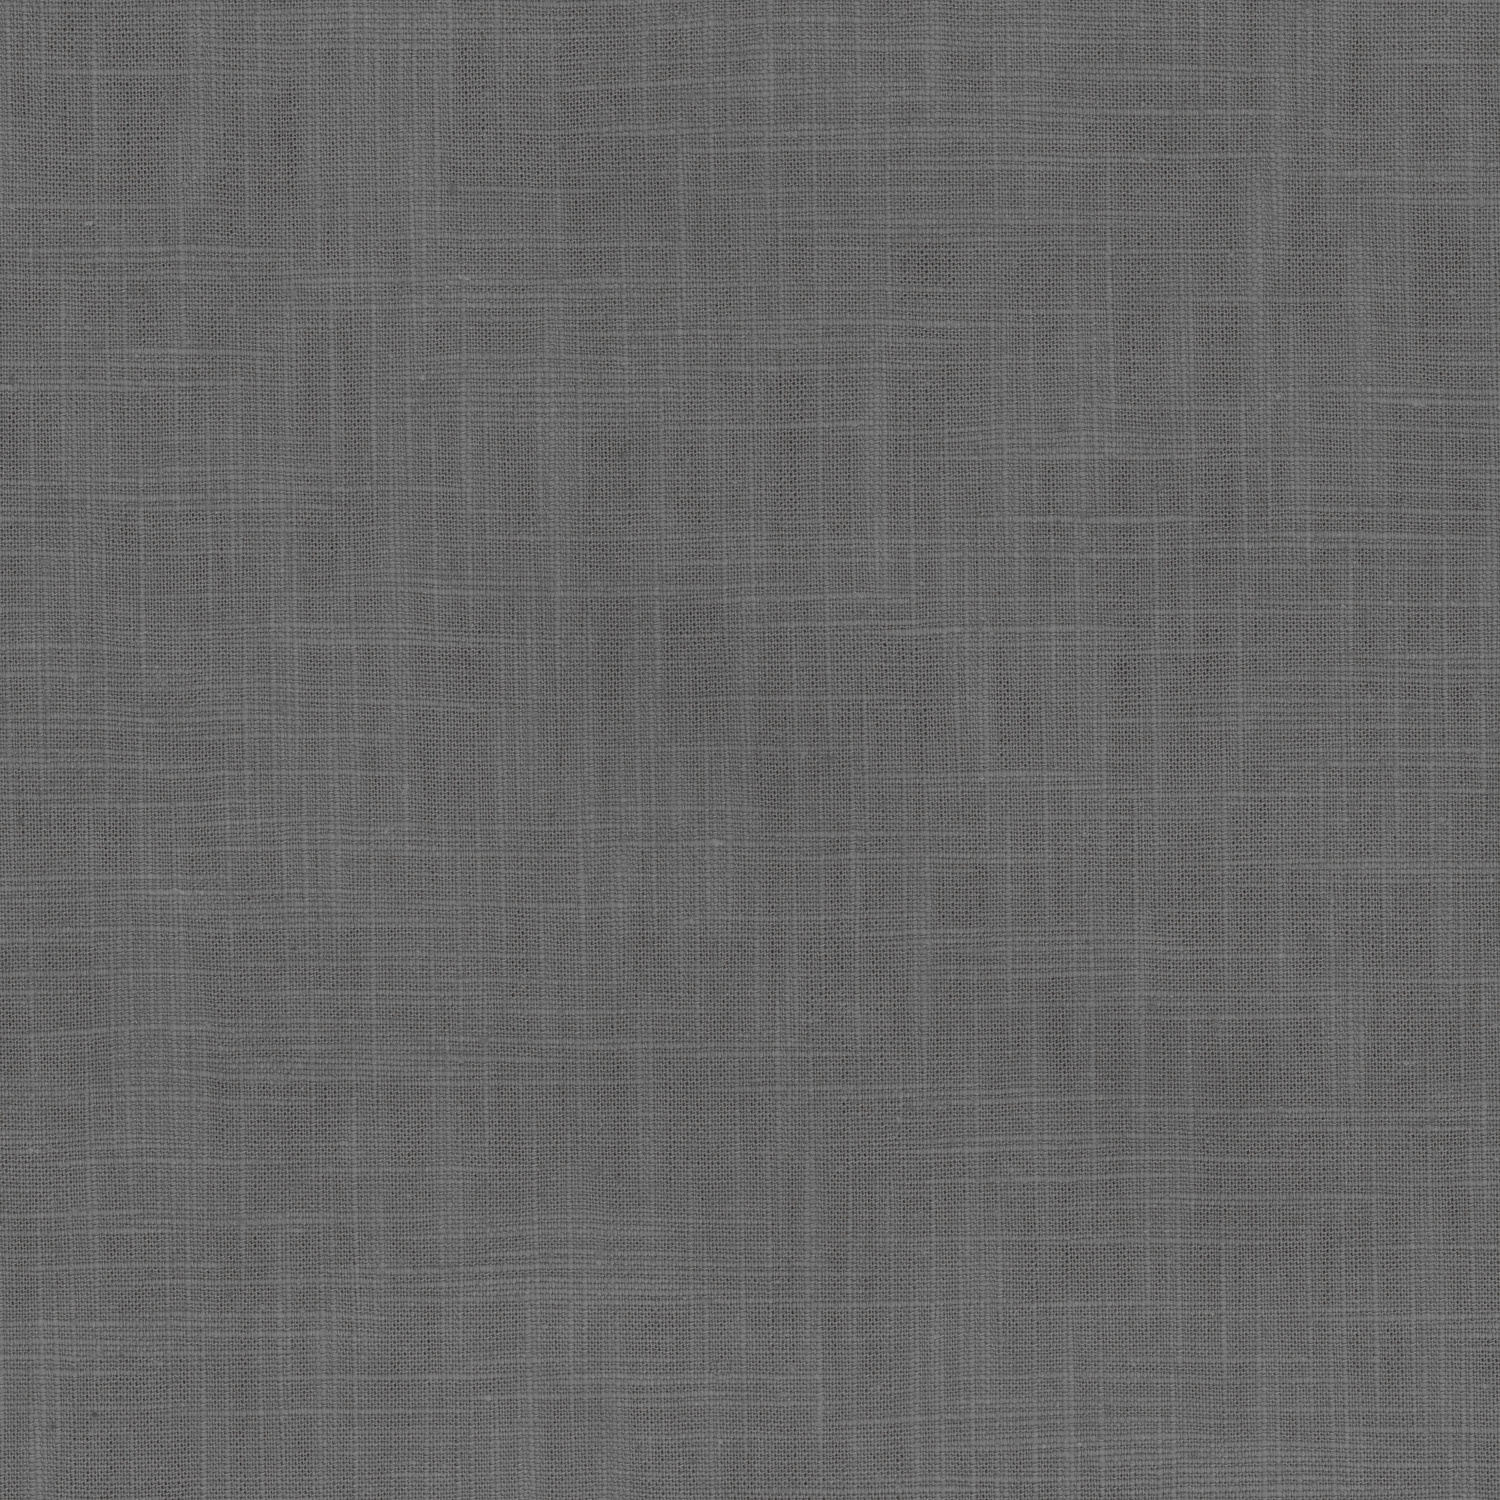 P/K Lifestyles Solid Fabric-Derby Solid/Charcoal